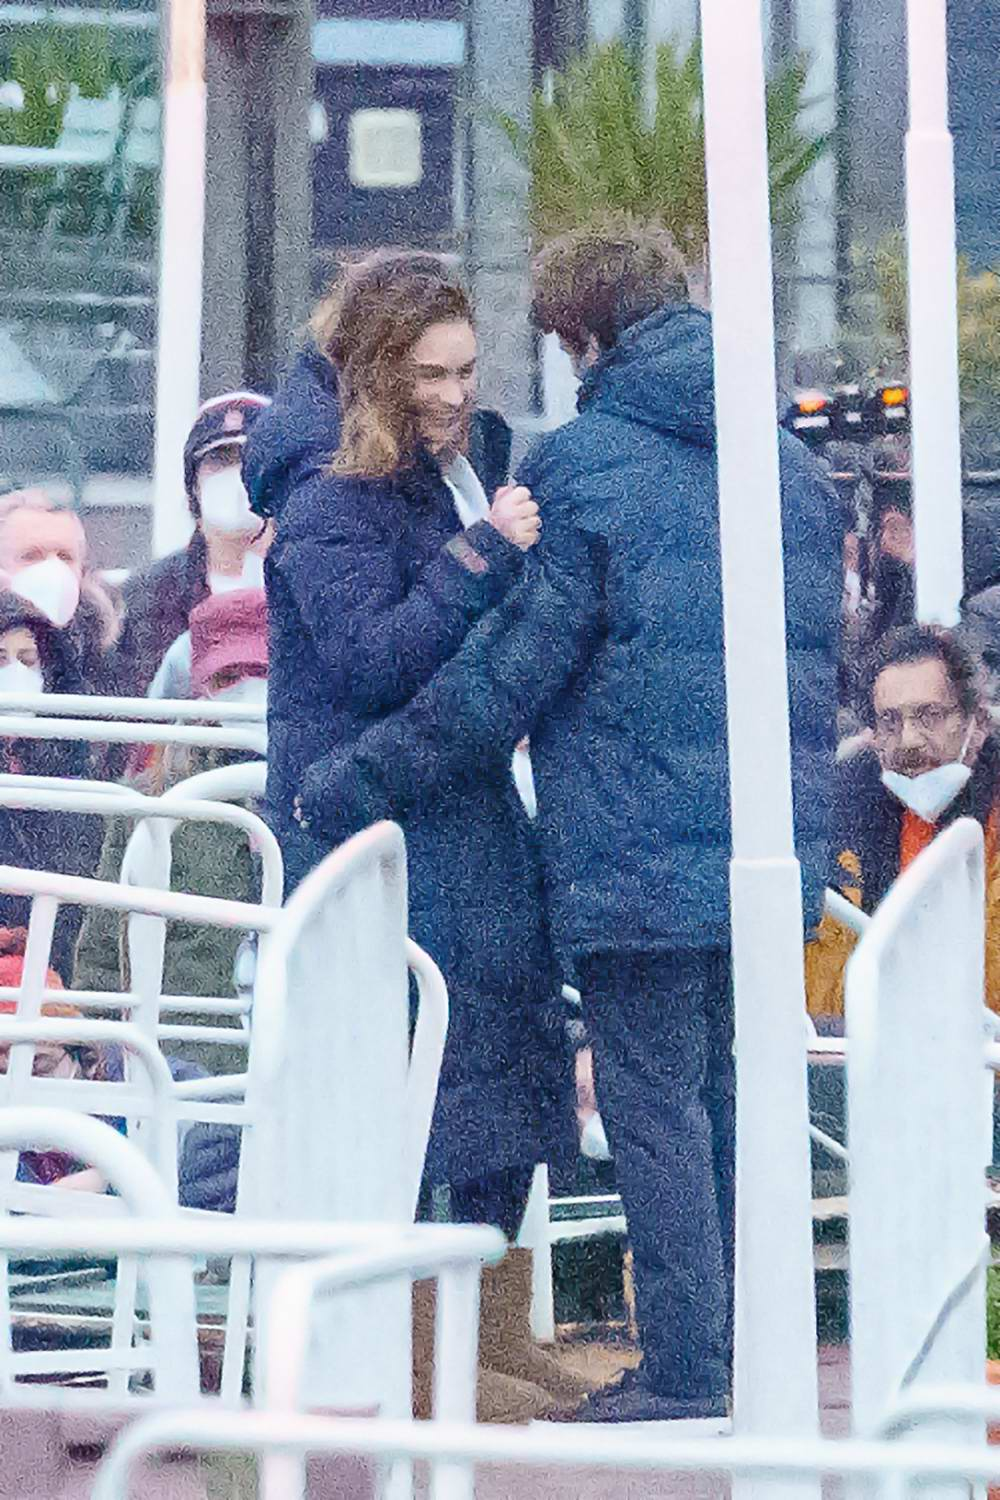 Lily James shares an on-screen kiss with her co-star on the set of 'What's Love Got To Do With It' in London, UK